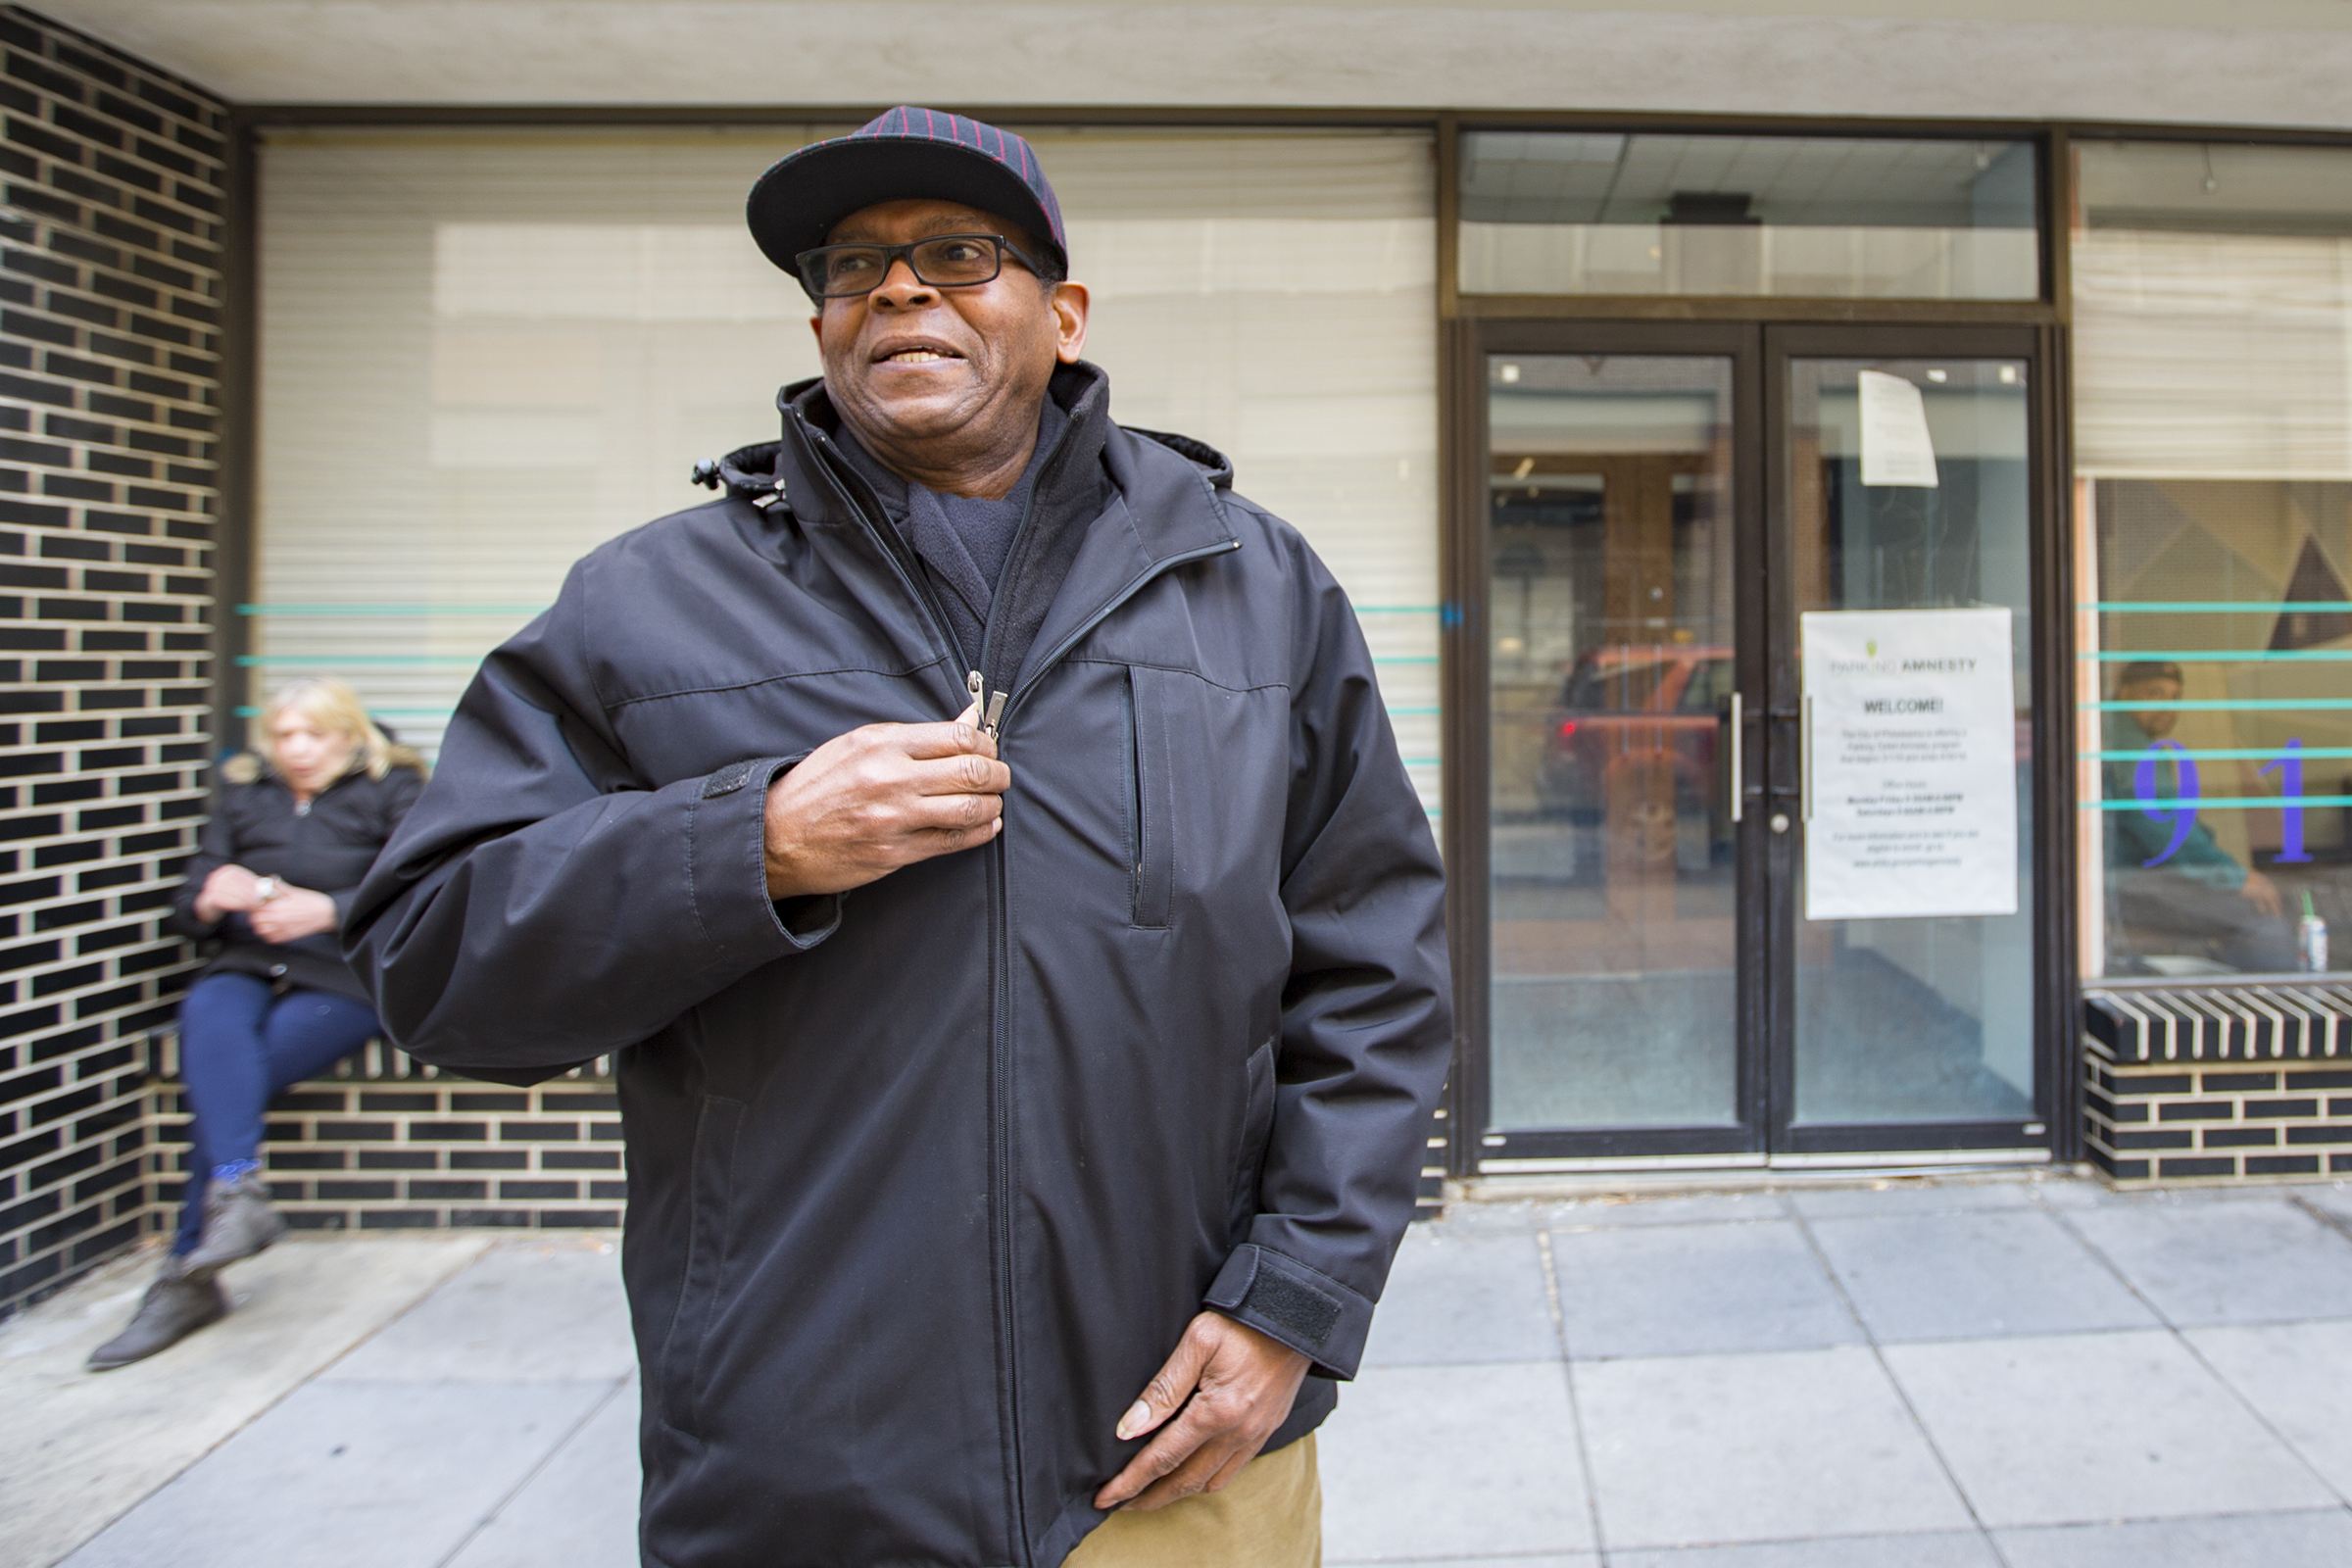 Philadelphia Parking Authority is offering an amnesty program for unpaid parking tickets before 2013. LeVon Wadley, who just walked out of the PPA building located on 9th and Filbert, had no luck and paid his ticket in full. Philadelphia, March 13th, 2018. JAMES BLOCKER / Staff Photographer